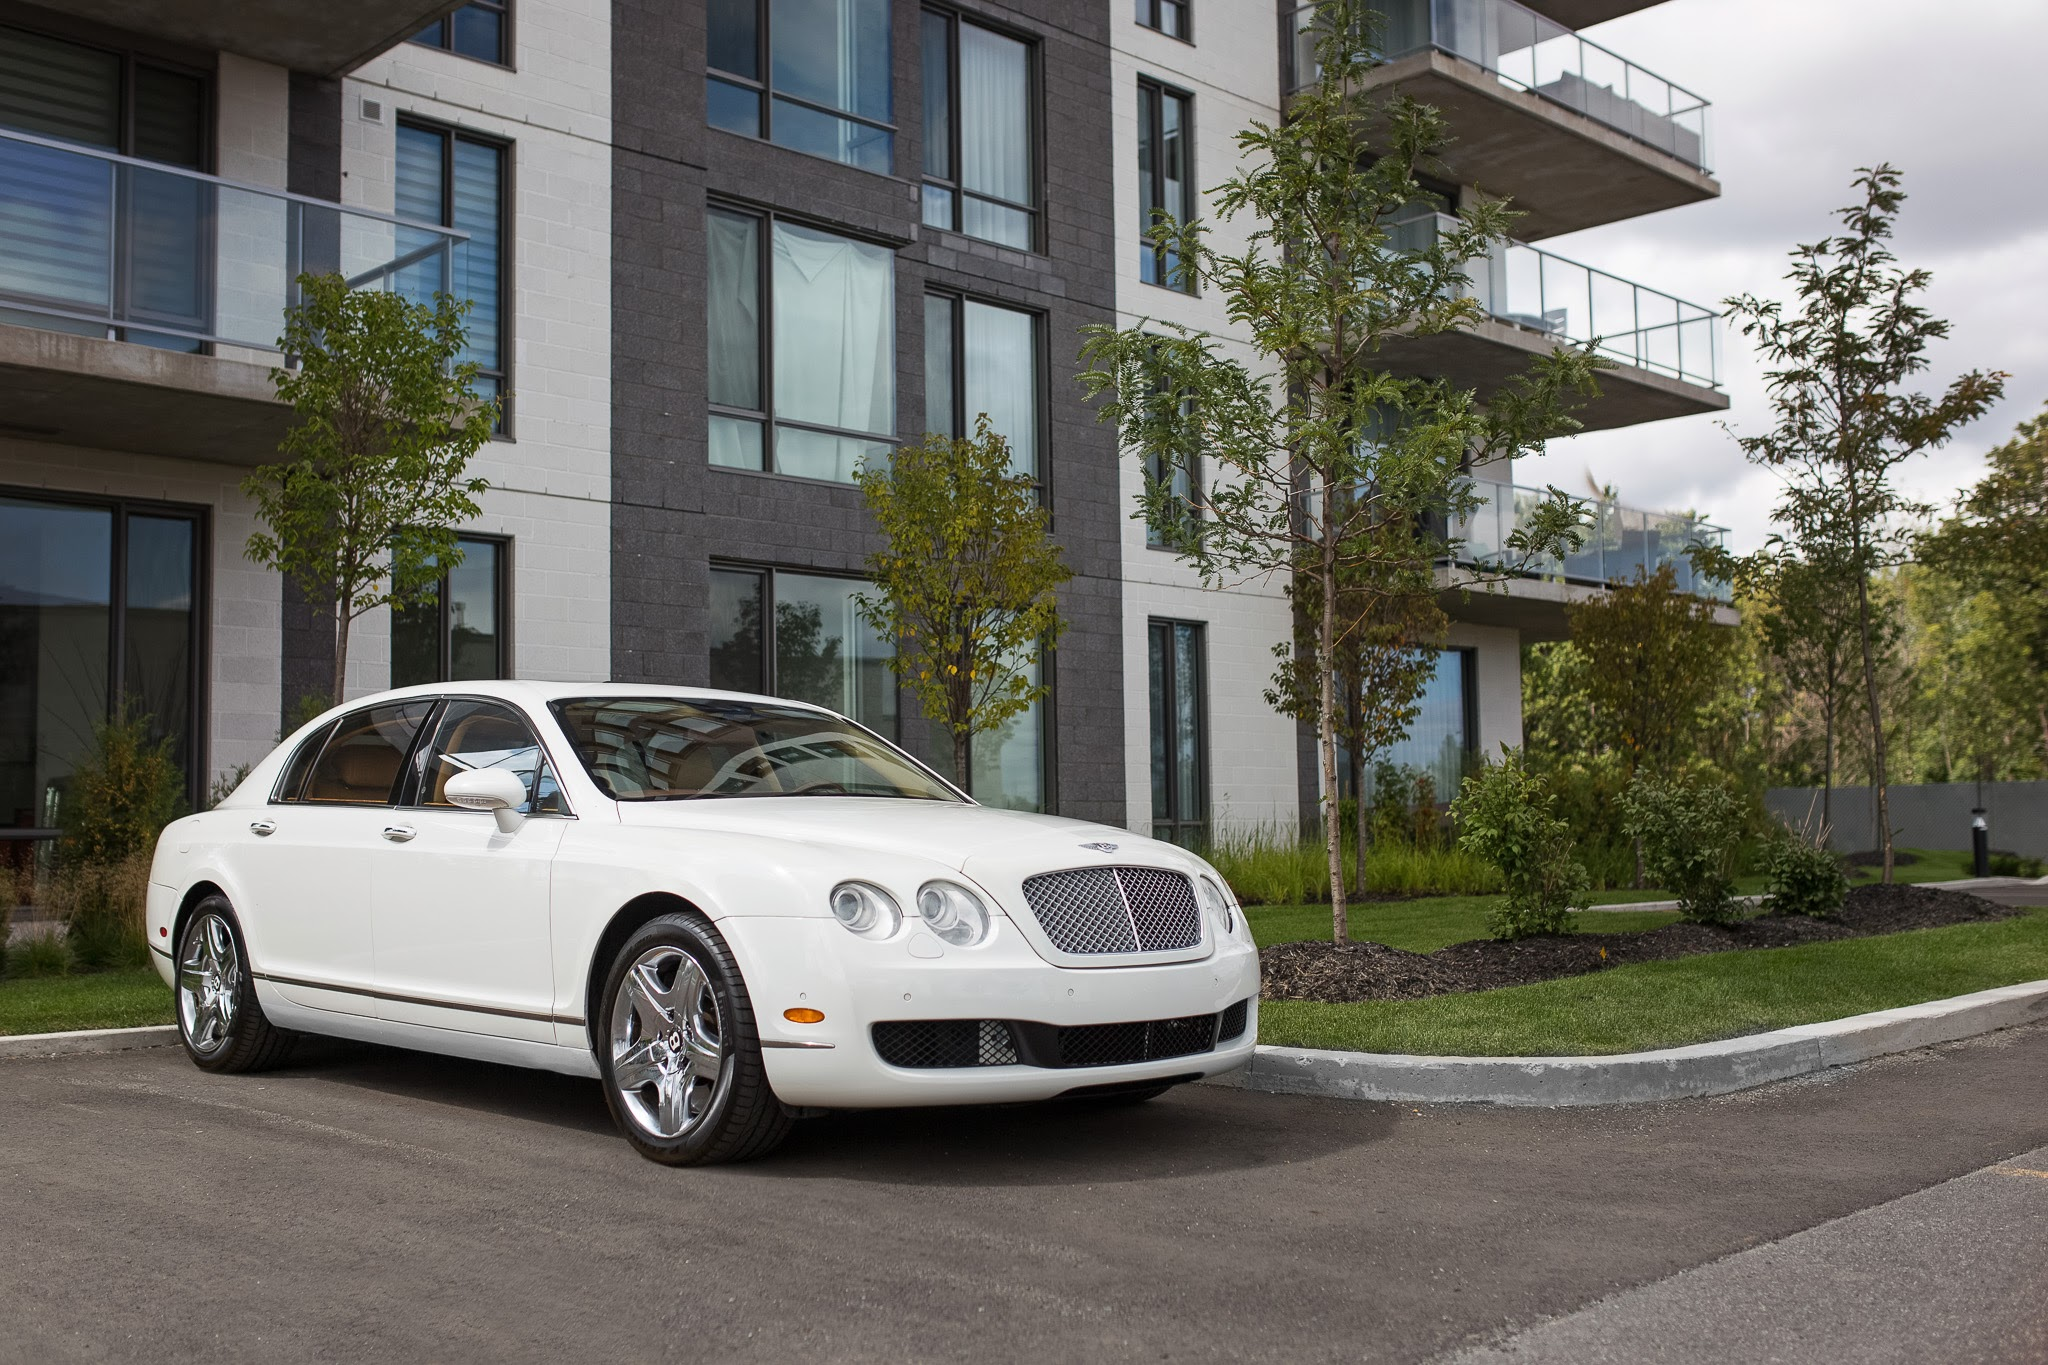 dynamic cars gtc picbentley sportscarhire car rent gt winter bentley hire sports continental